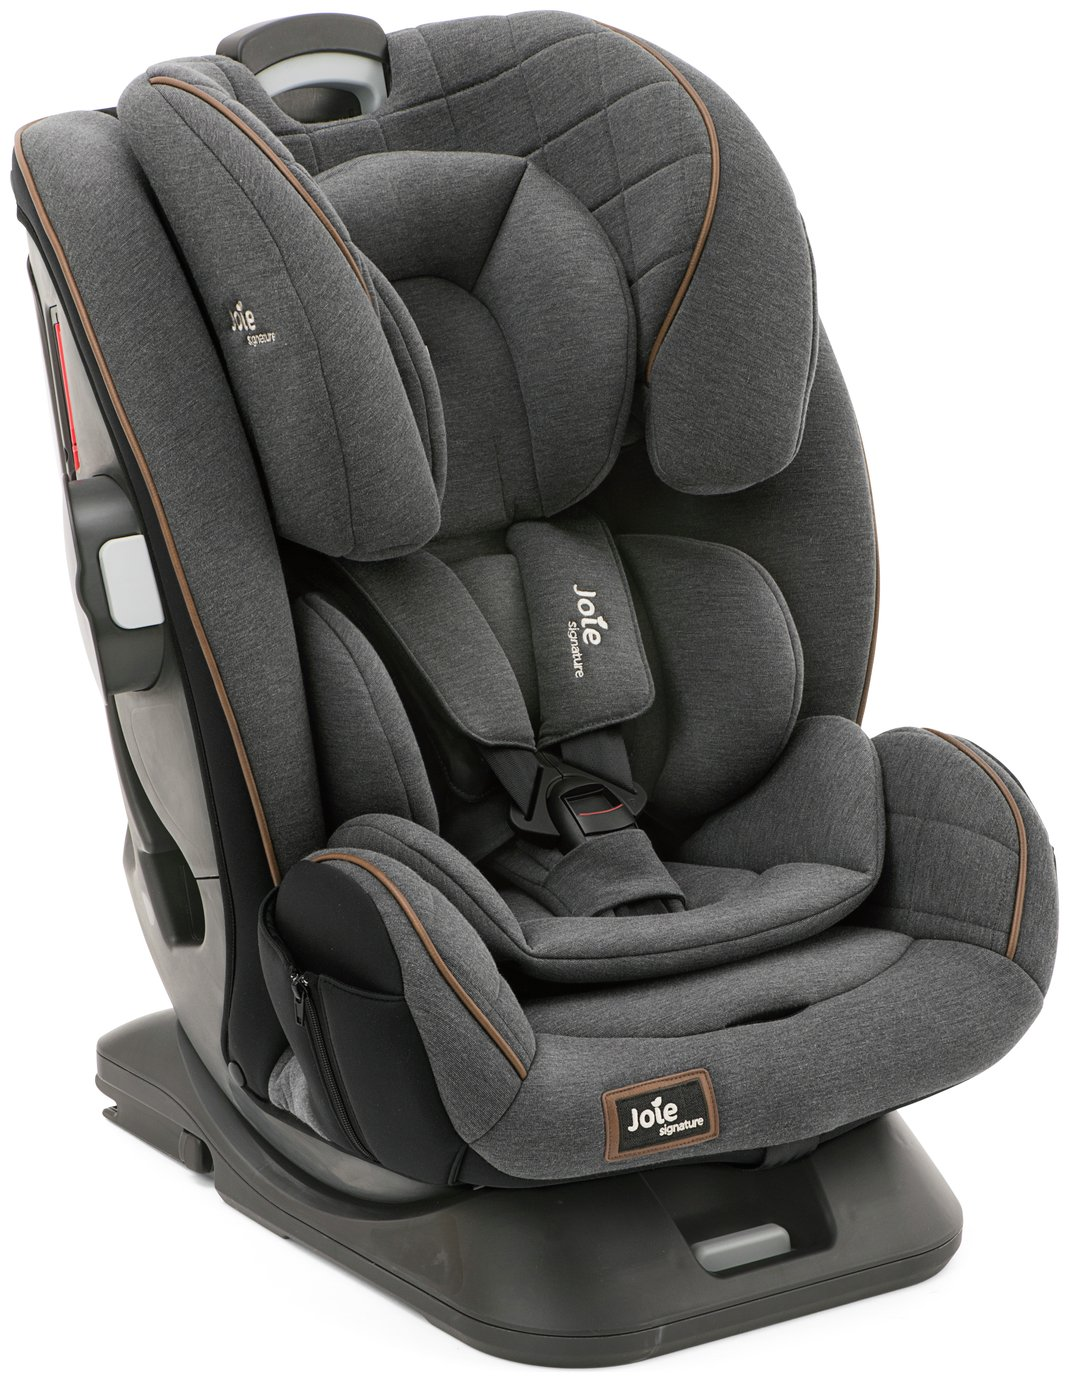 Stage 2 Car Seat With Base Joie Every Stage Fx Review Mother Baby